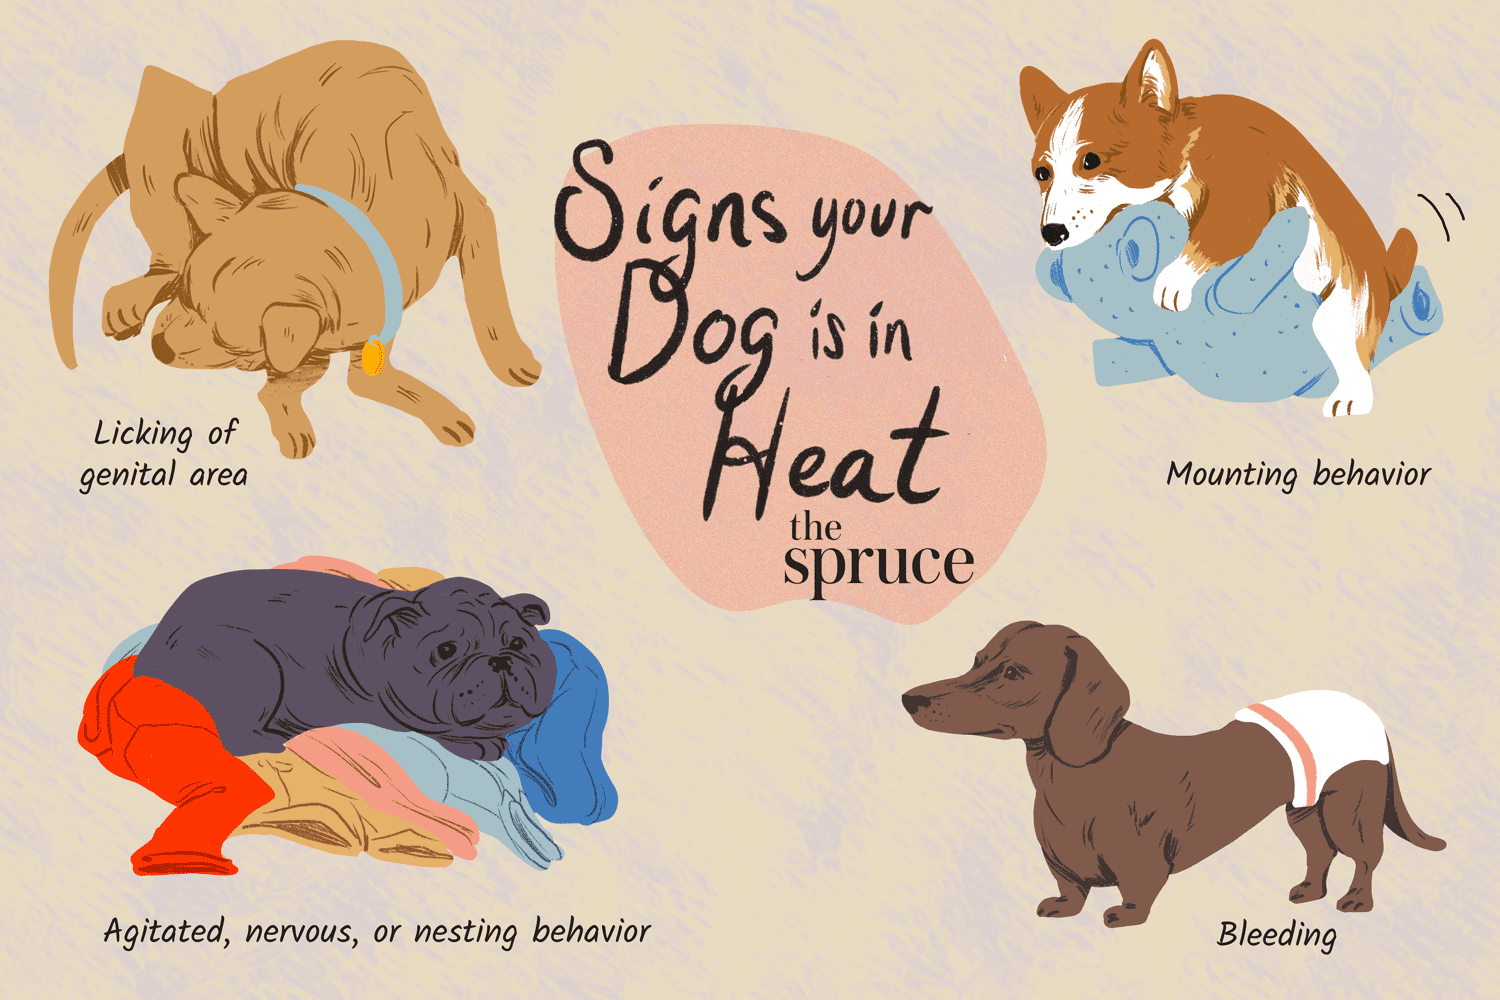 Illustration depicting the signs a dog is in heat: nesting behavior, genital licking, mounting behavior and bleeding